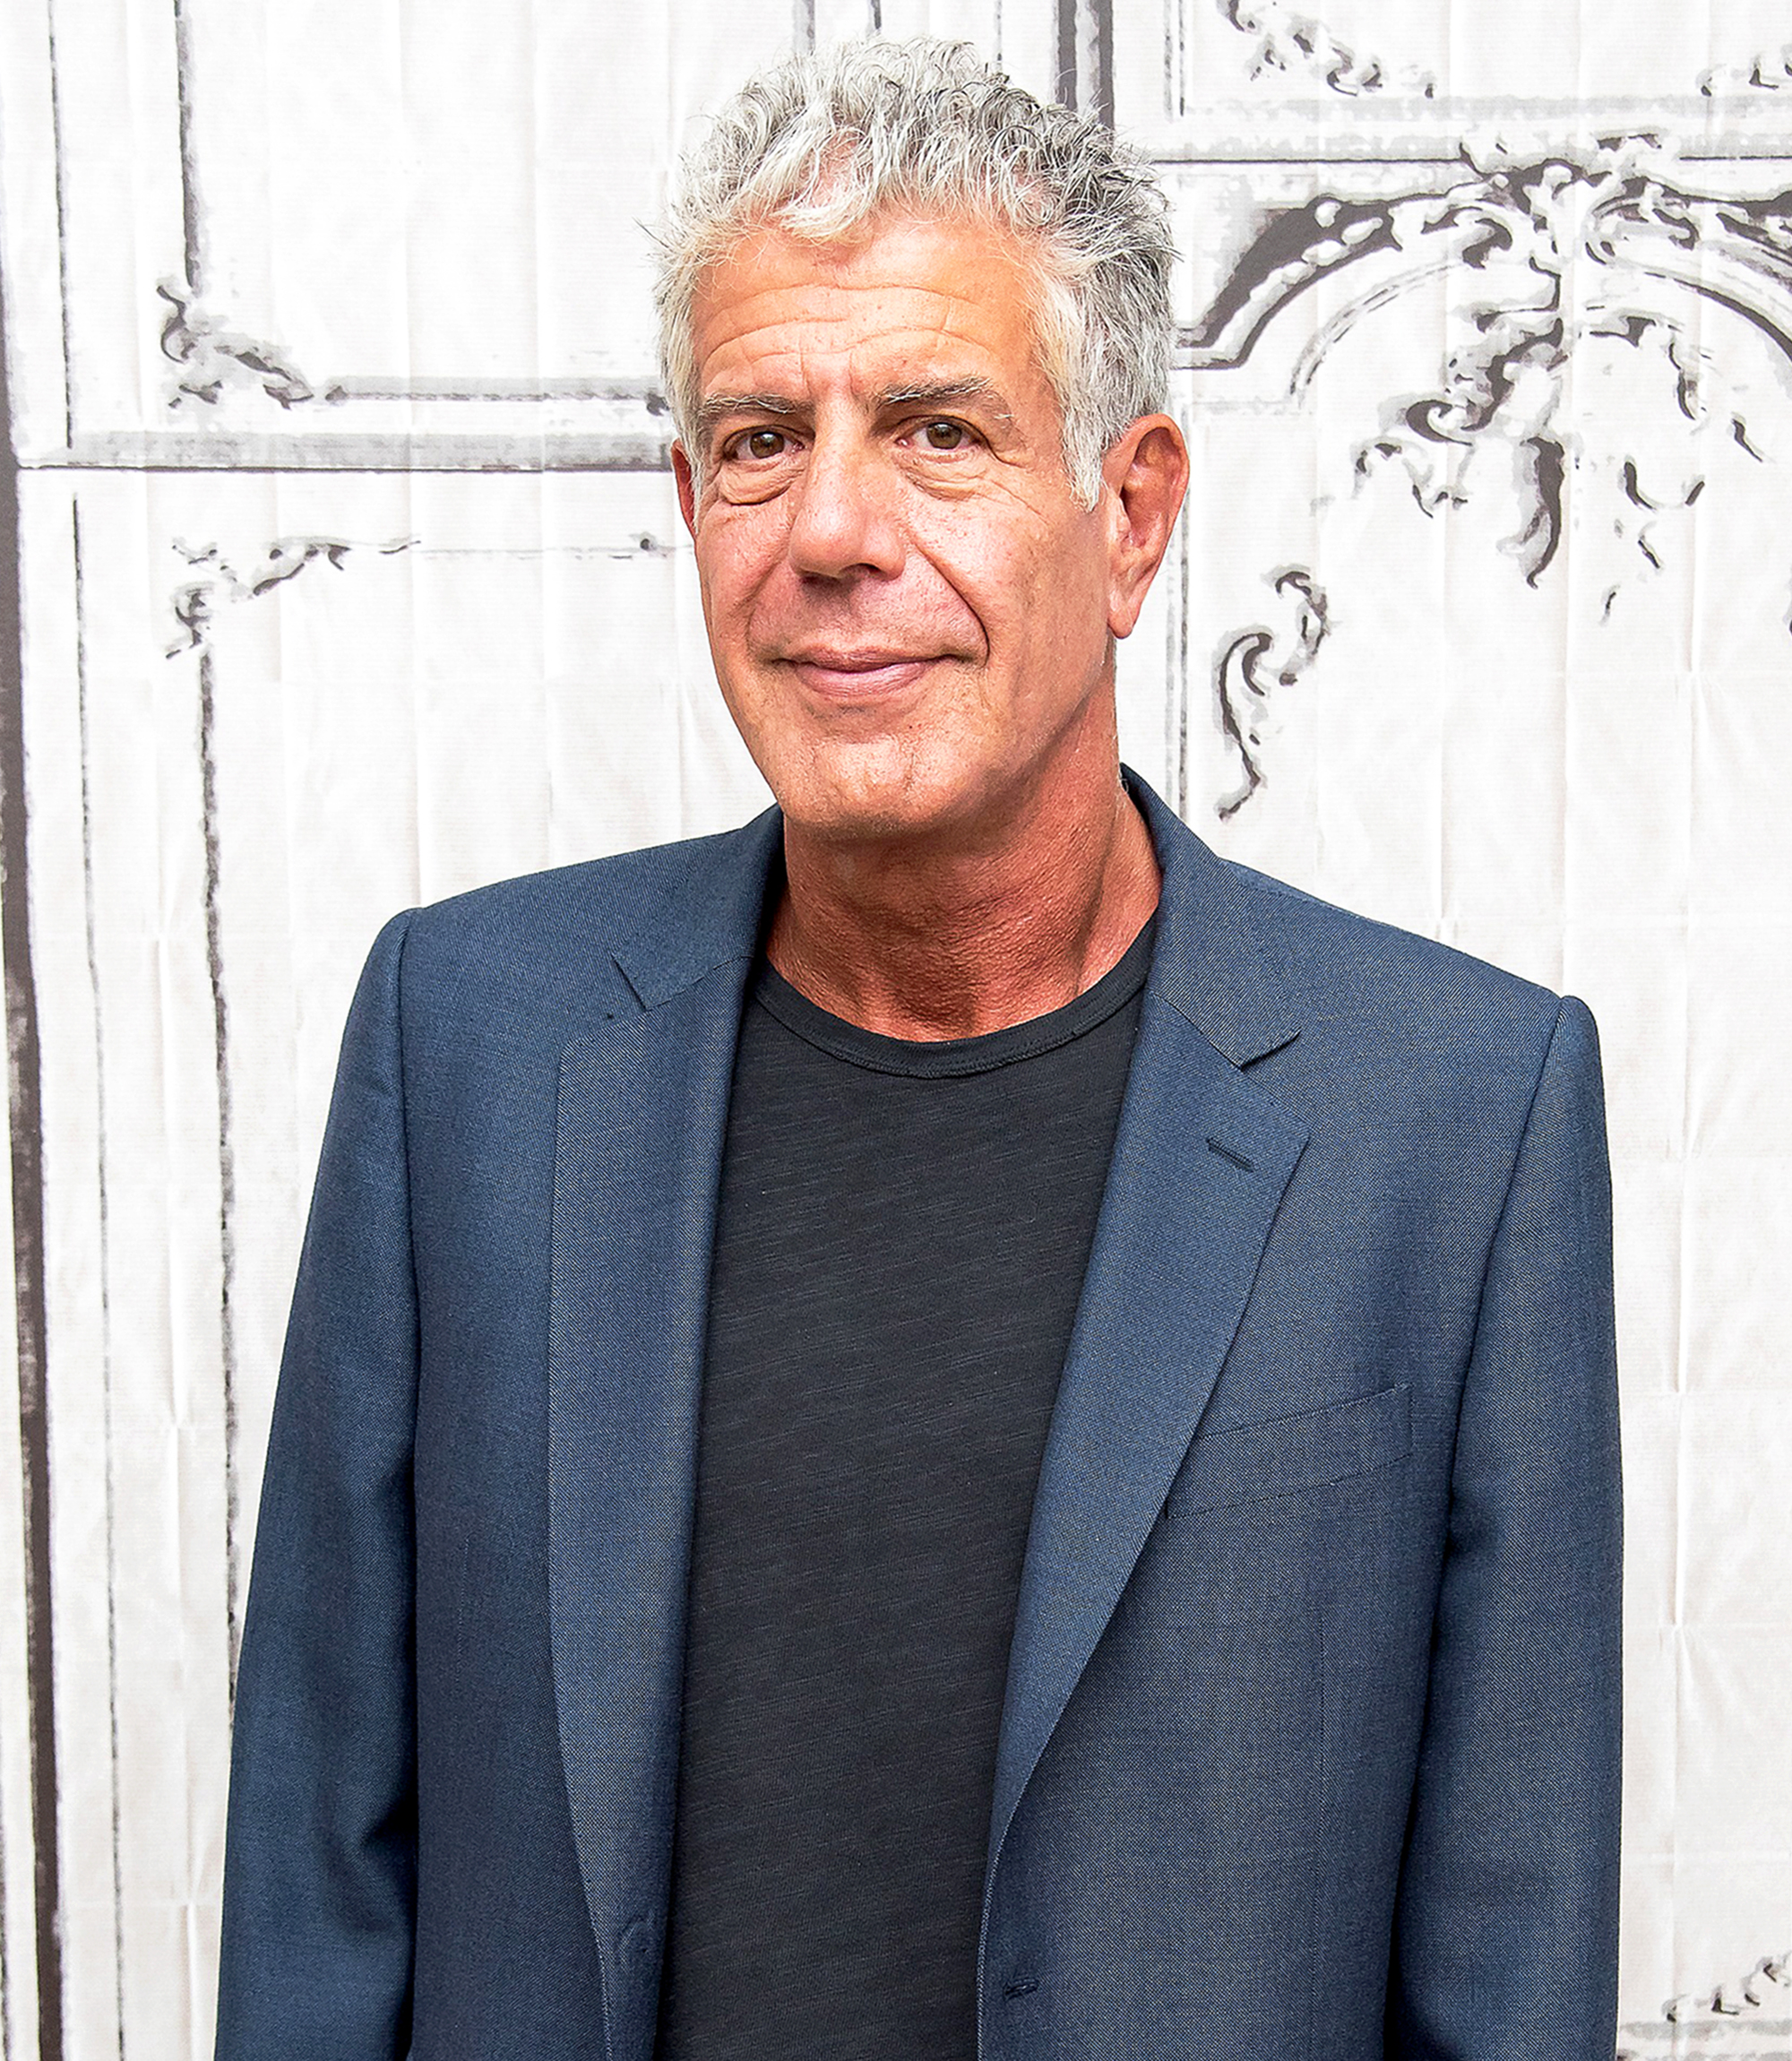 Anthony Bourdain had no drugs in his system when he died